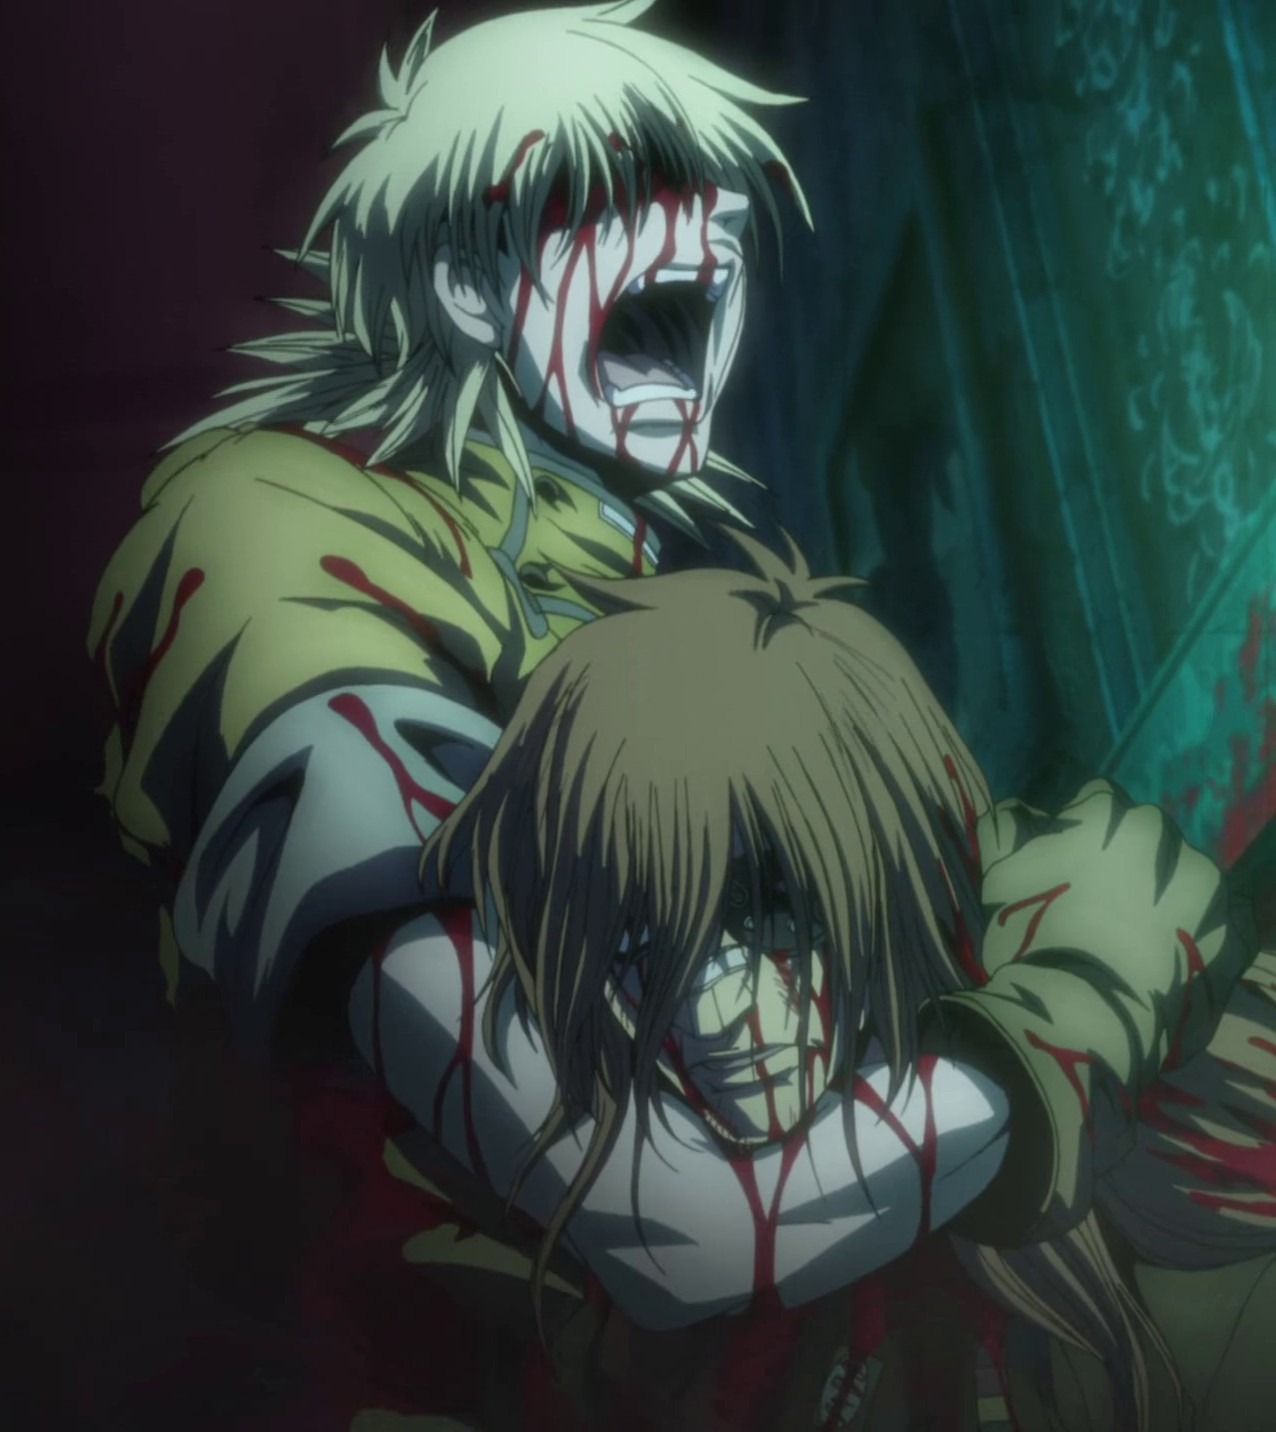 Seras with dead Bernadotte Anime Dying Gif